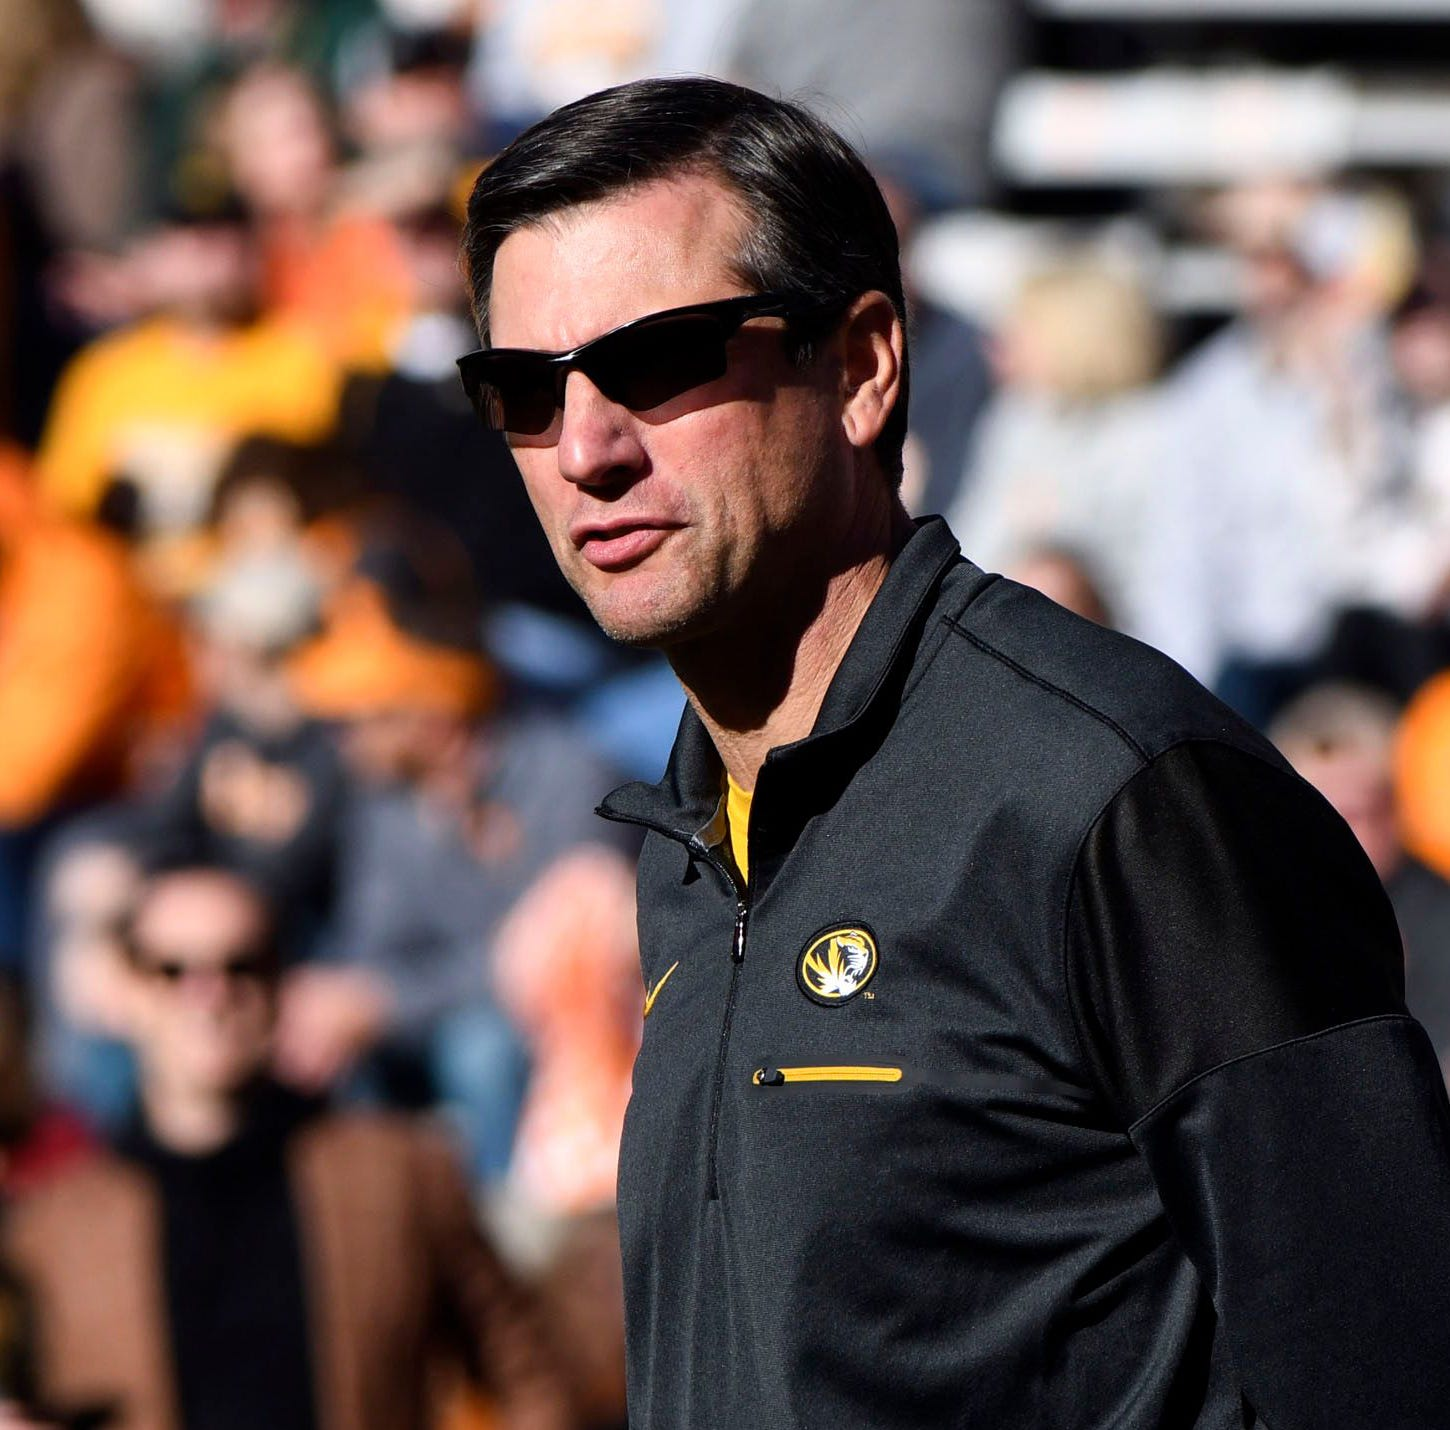 Former UT Vols coach Derek Dooley now has quarterback appeal